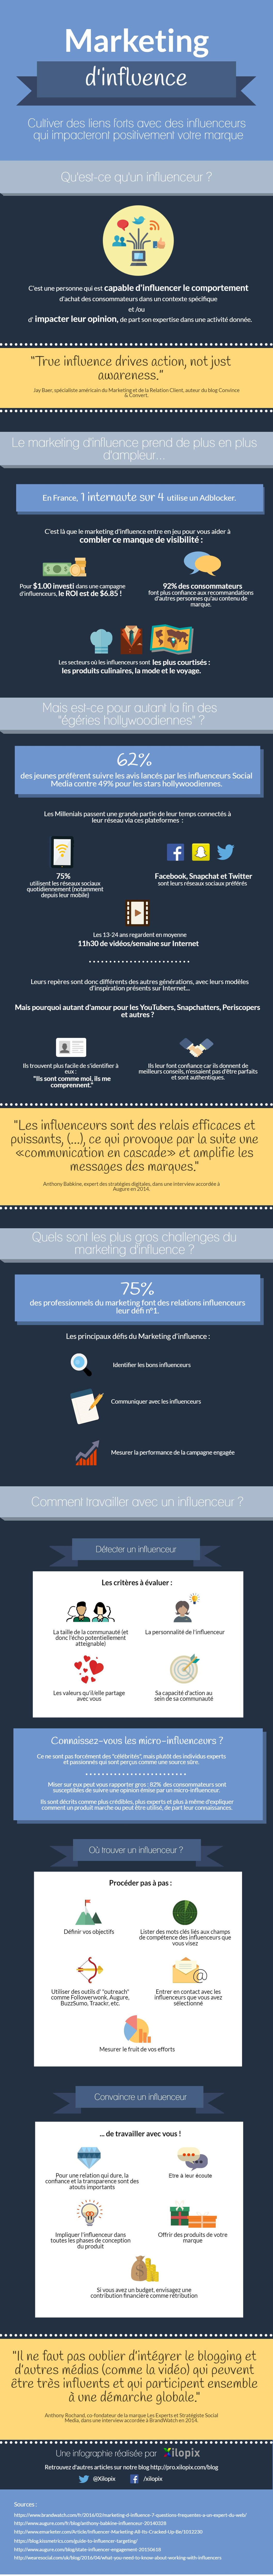 infographie-relations-influenceur-31